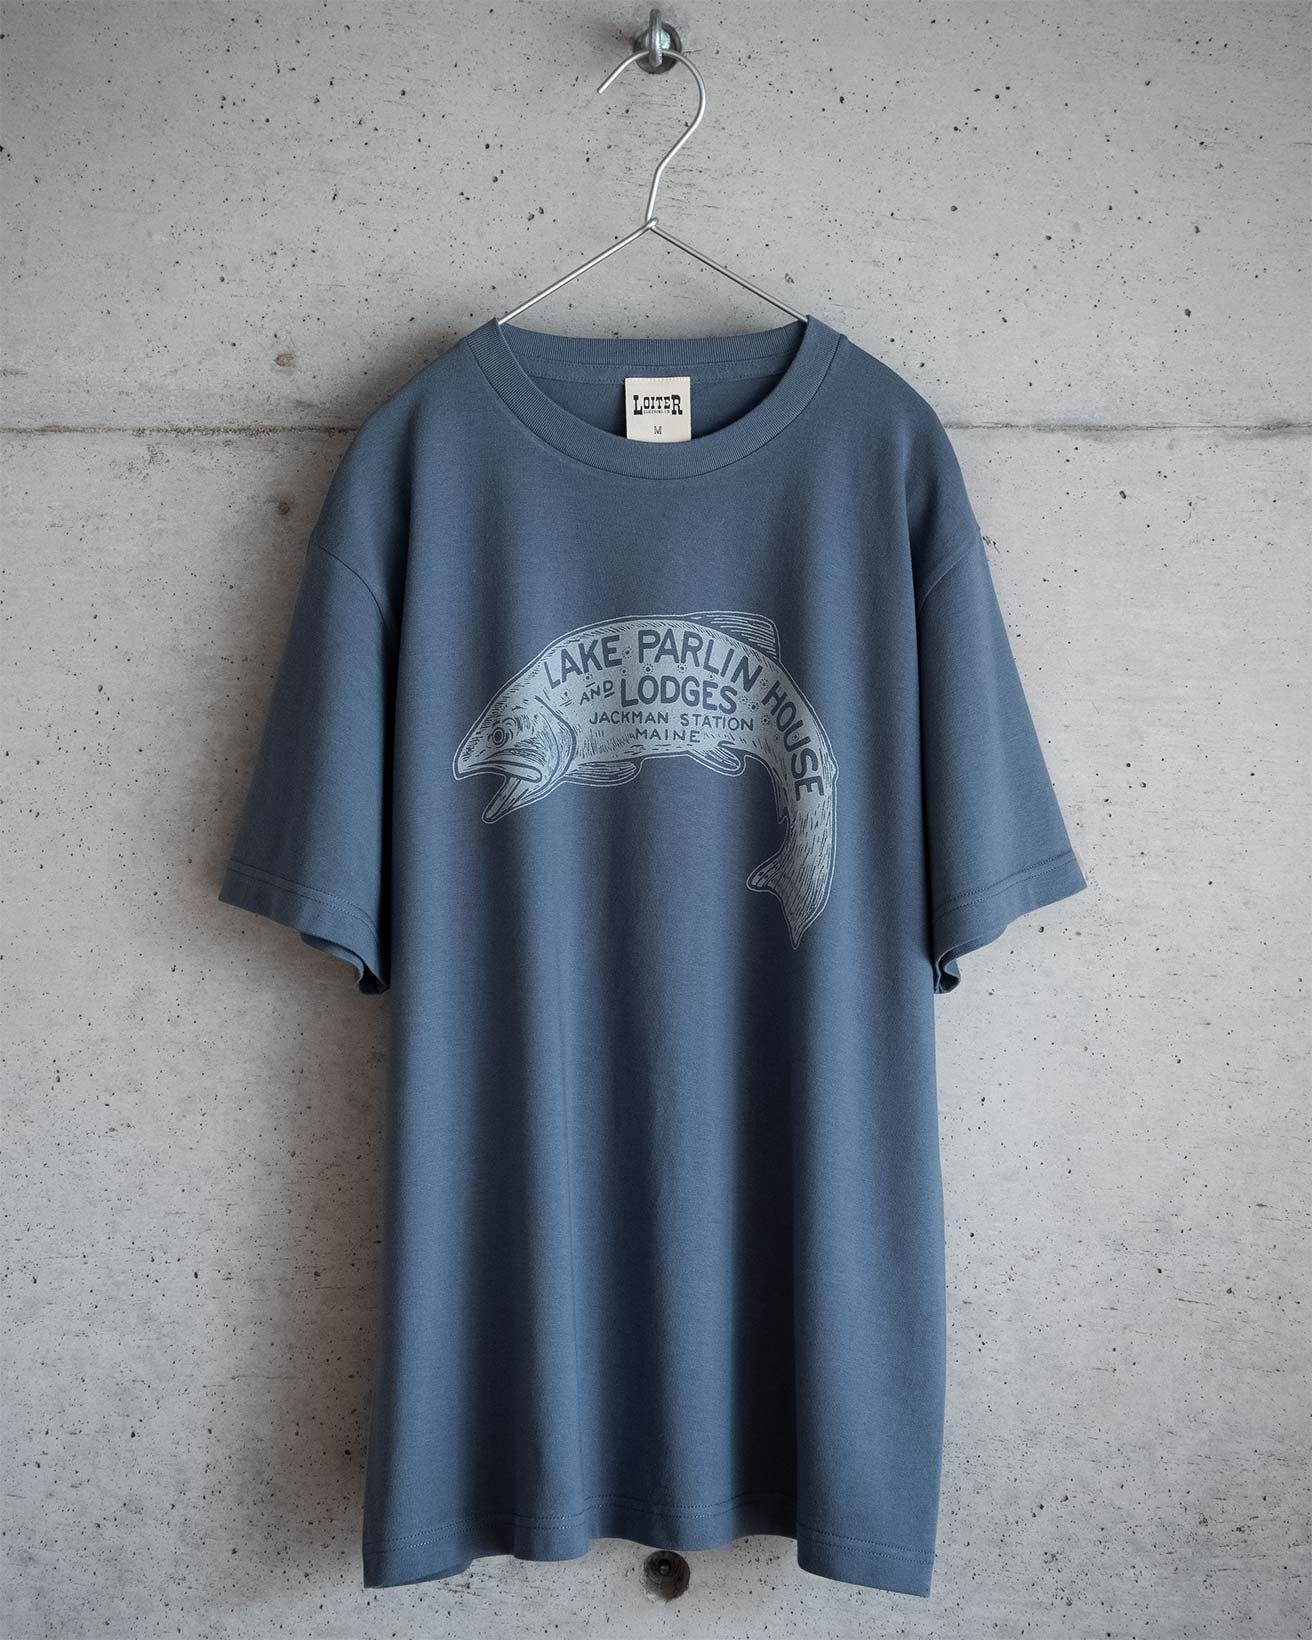 LAKE PARLIN HOUSE Tシャツ